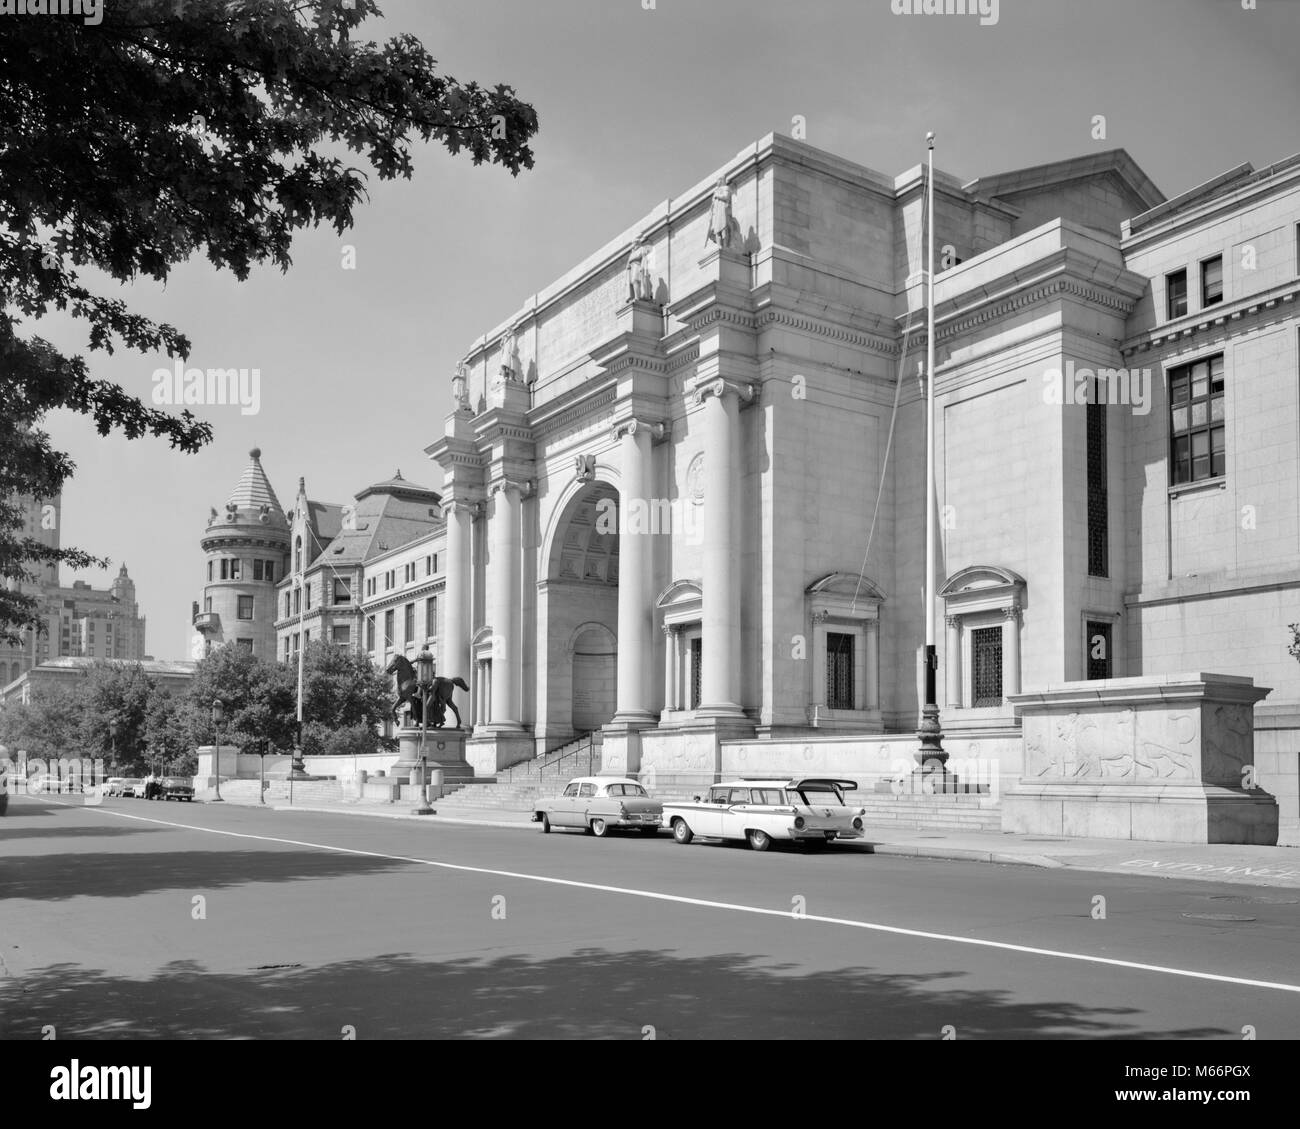 Années 50 années 60 AMERICAN MUSEUM OF NATURAL HISTORY CENTRAL PARK WEST MANHATTAN NEW YORK USA - r5626 Photo Stock